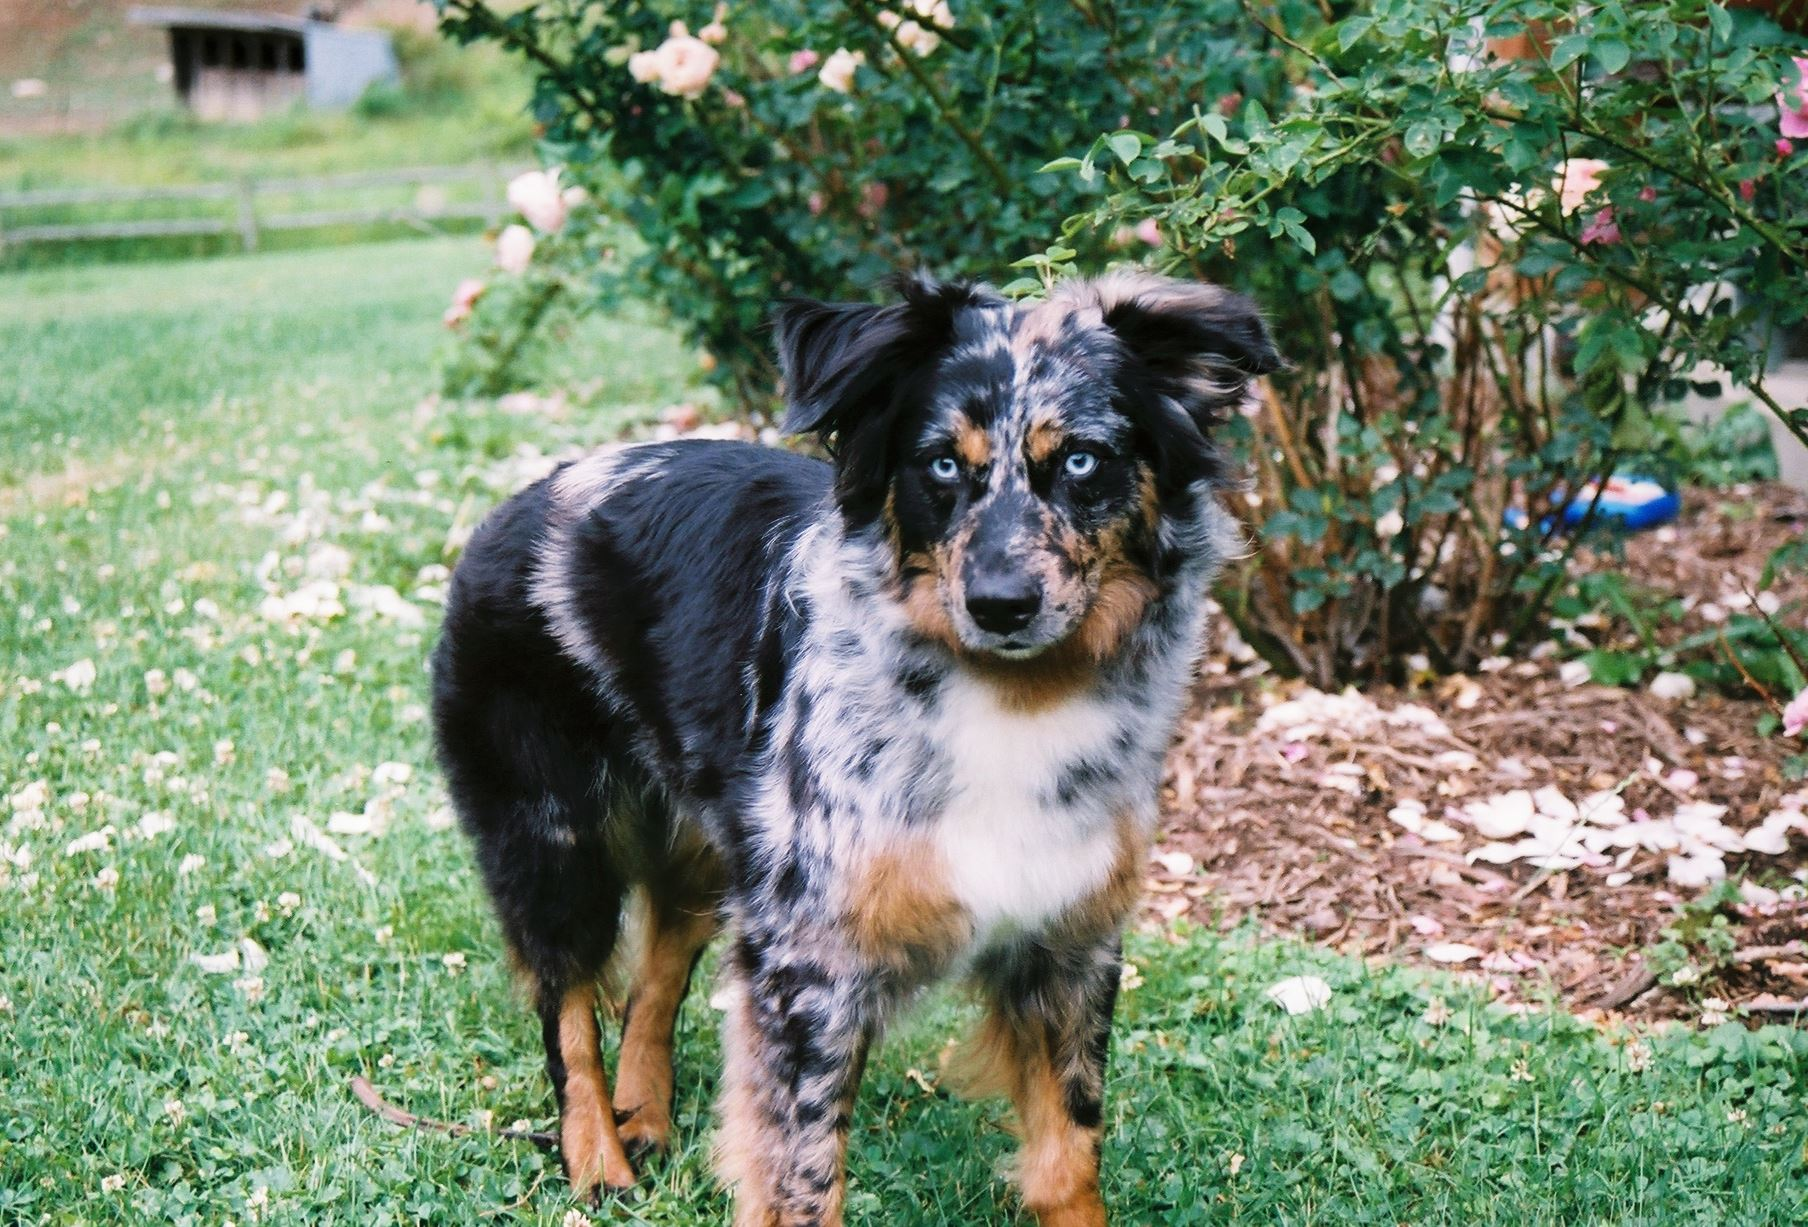 Boomer, 7, is an Australian shepherd Boomer, 7, an Australian shepherd, is one of the five winners of the American Kennel Club's Humane Fund Awards for Canine Excellence for protecting his owner from attack by a black bear.